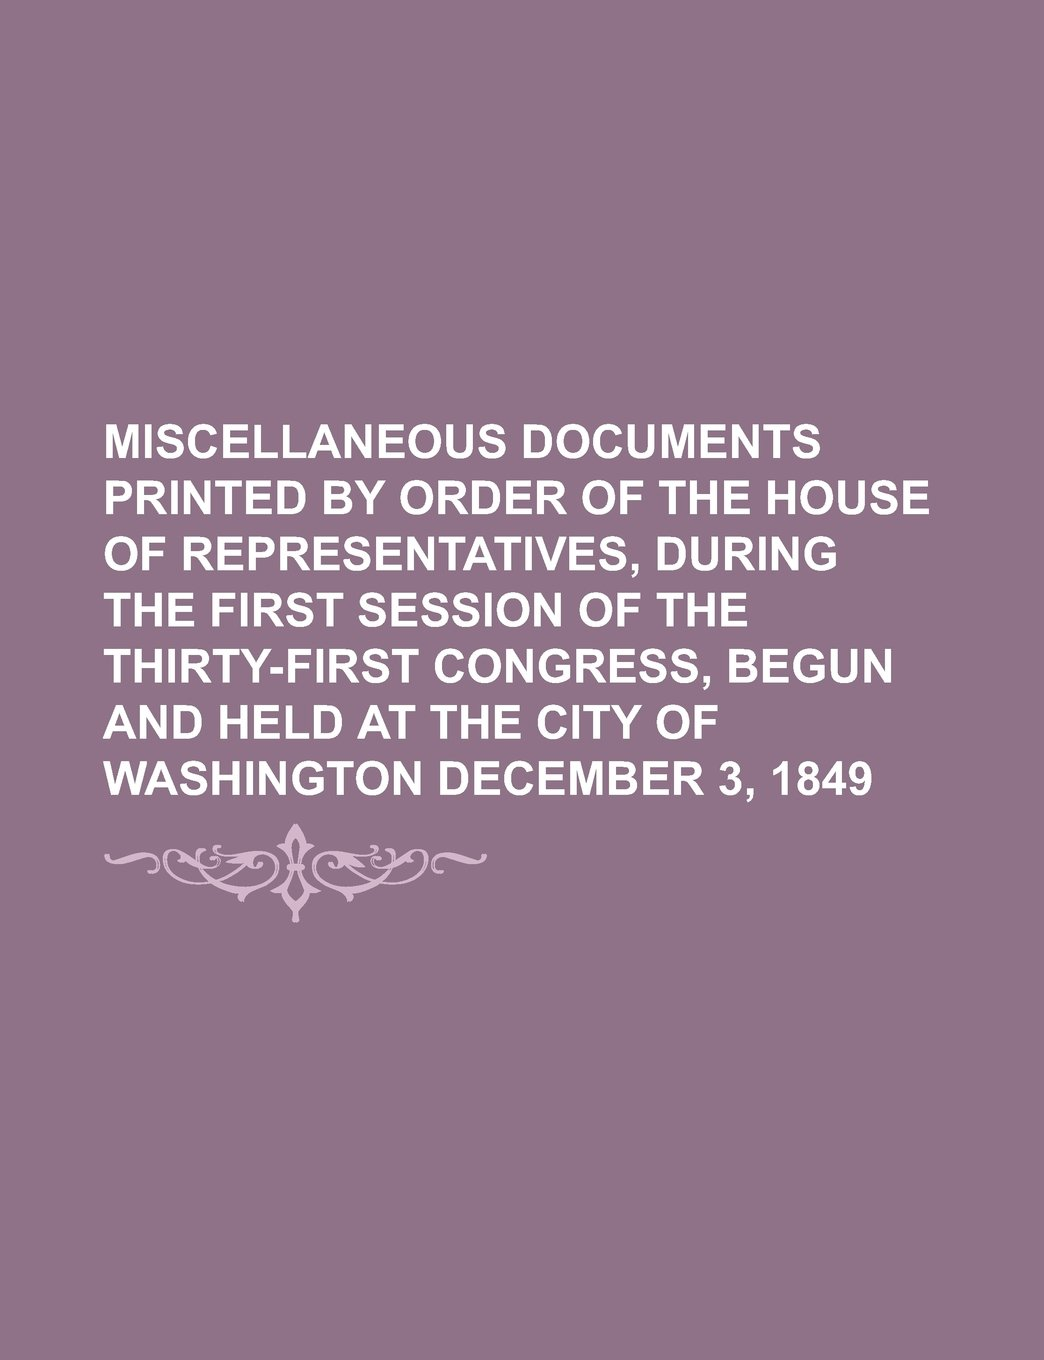 MISCELLANEOUS DOCUMENTS PRINTED BY ORDER OF THE HOUSE OF REPRESENTATIVES, DURING THE FIRST SESSION OF THE THIRTY-FIRST CONGRESS, BEGUN AND HELD AT THE CITY OF WASHINGTON   DECEMBER 3, 1849 pdf